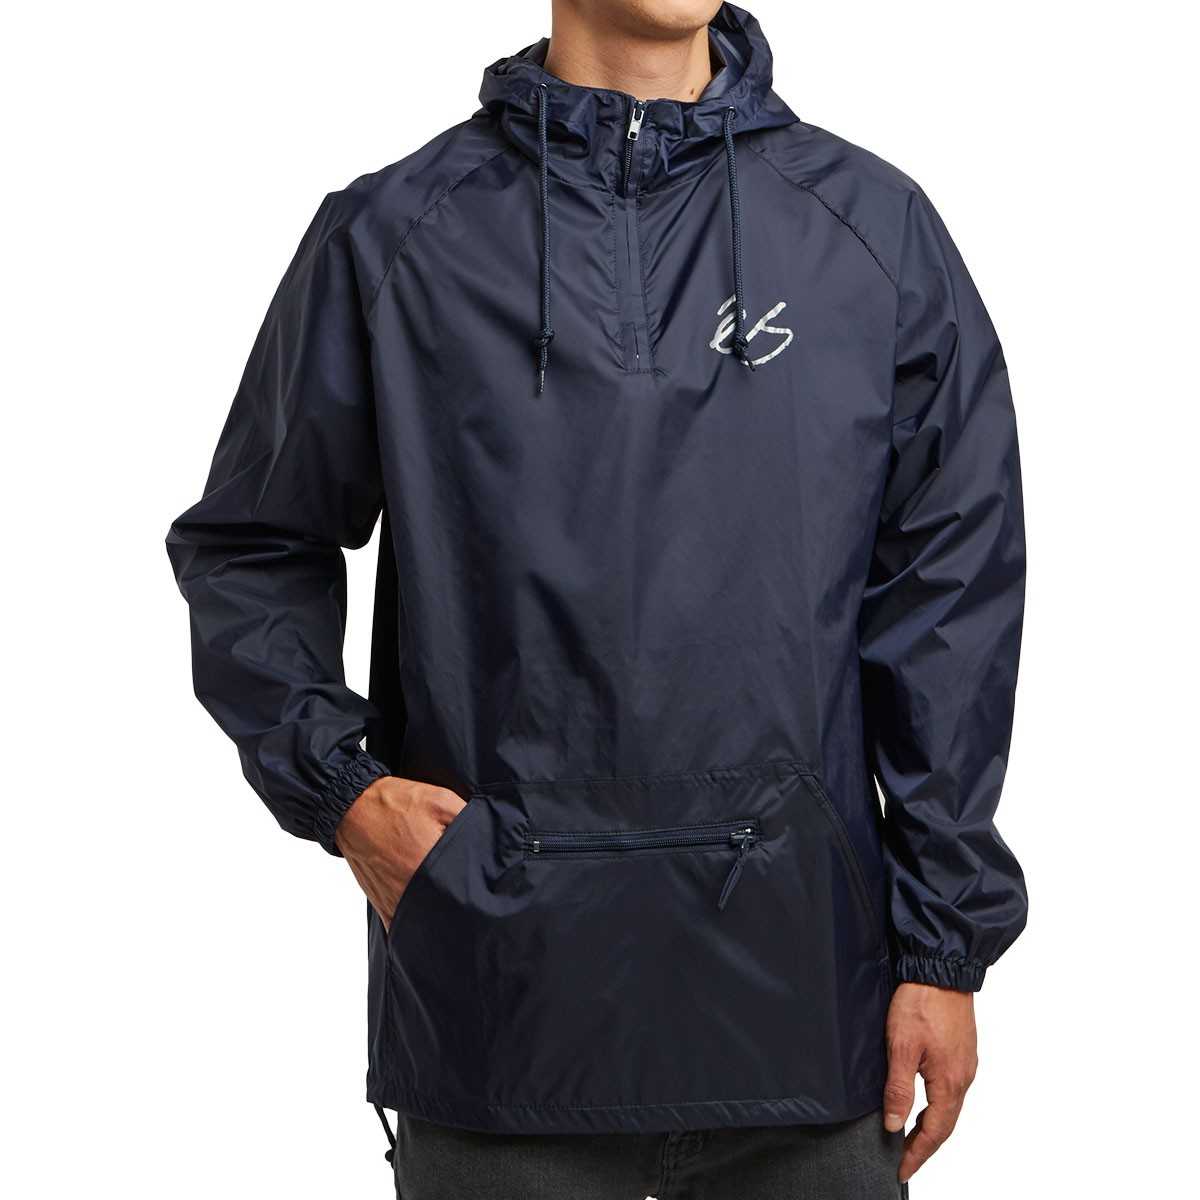 4413717c eS Packable Anorak Jacket - Navy